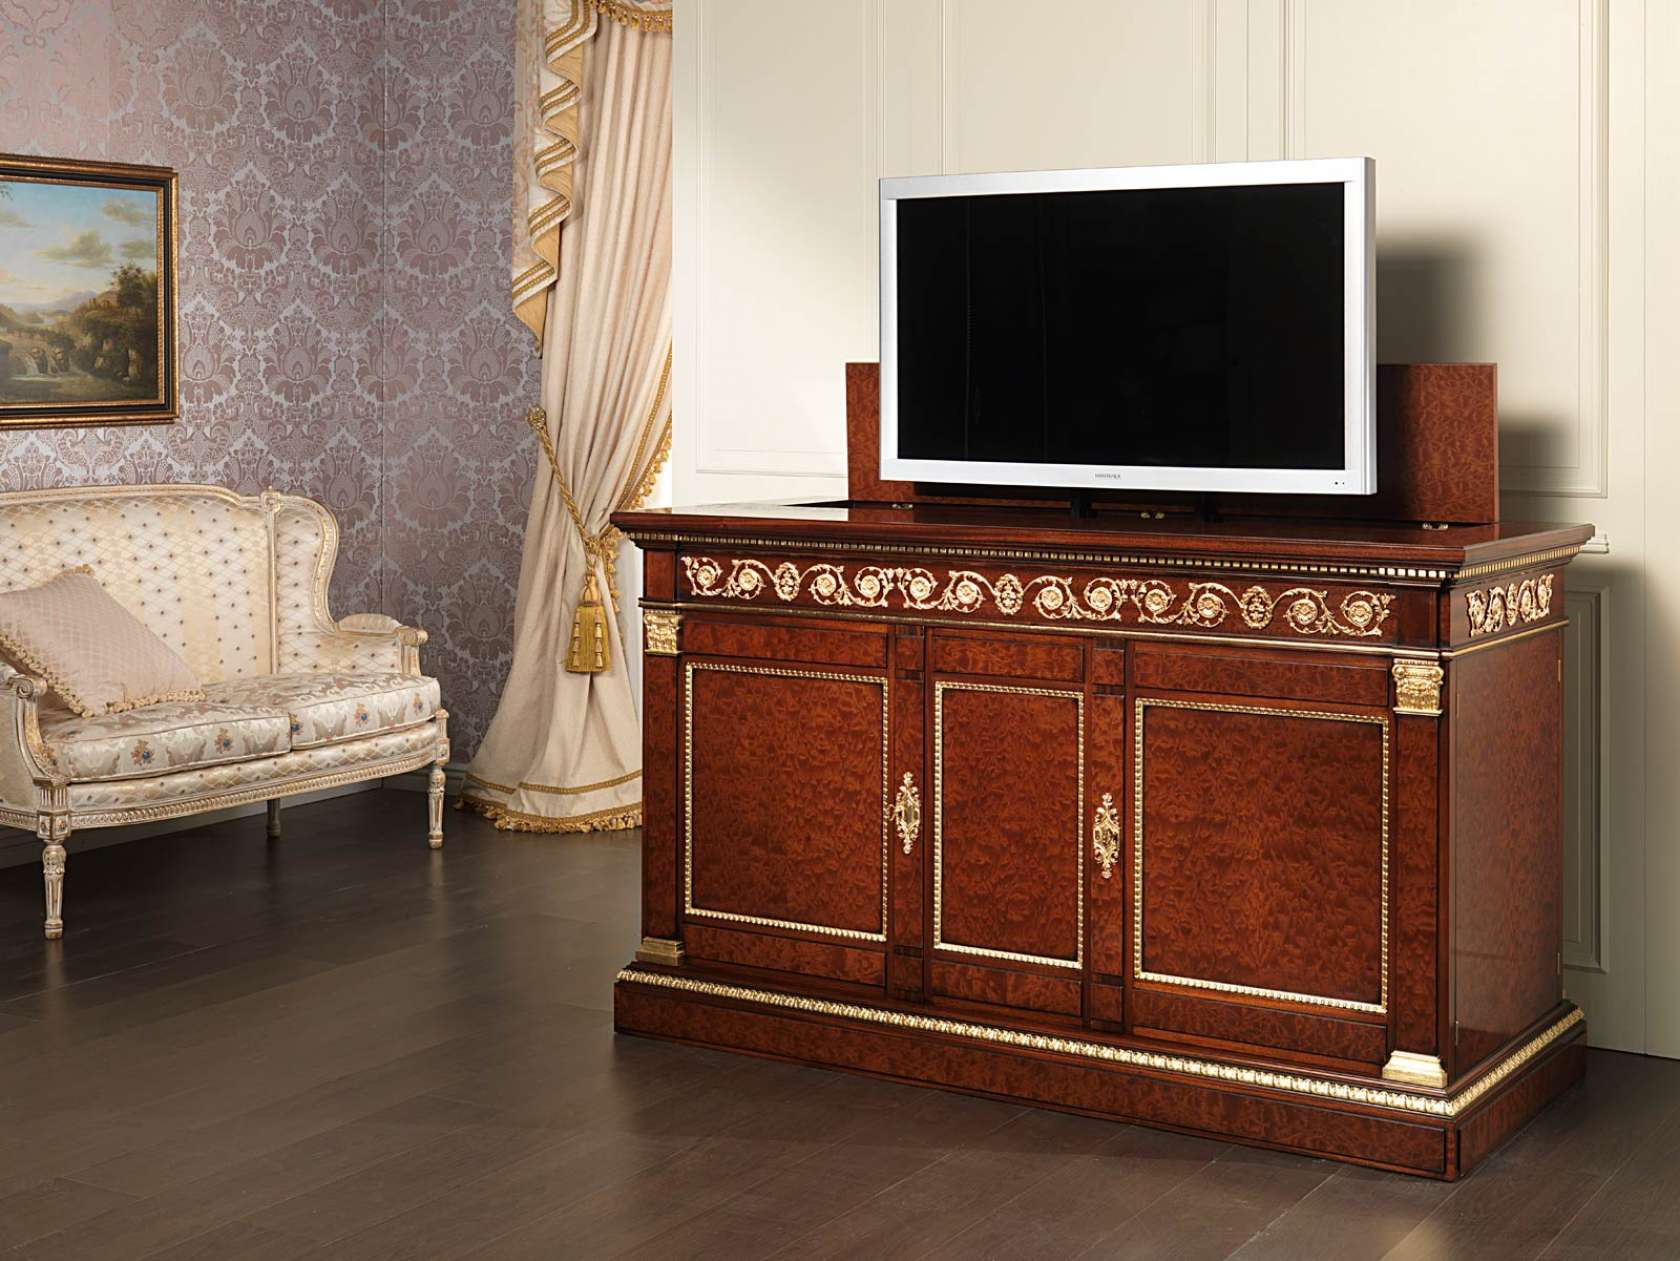 Meuble Tv En Acajou Meuble Tv En Acajou Style Empire Vimercati Classic Furniture